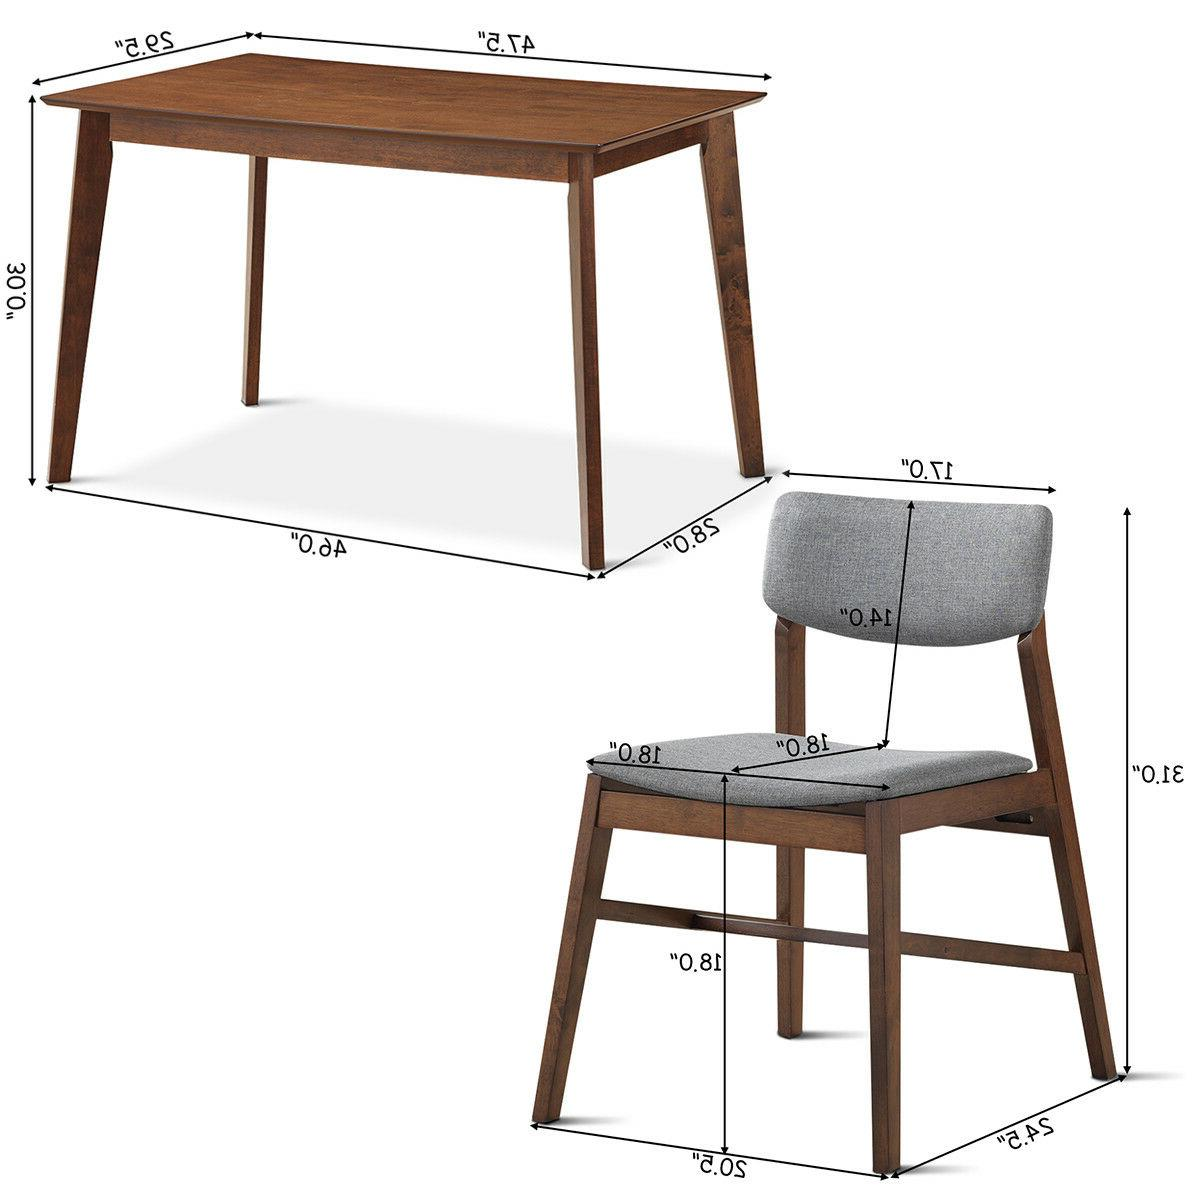 5 Mid Modern Dining Kitchen Table & 4 Upholstered